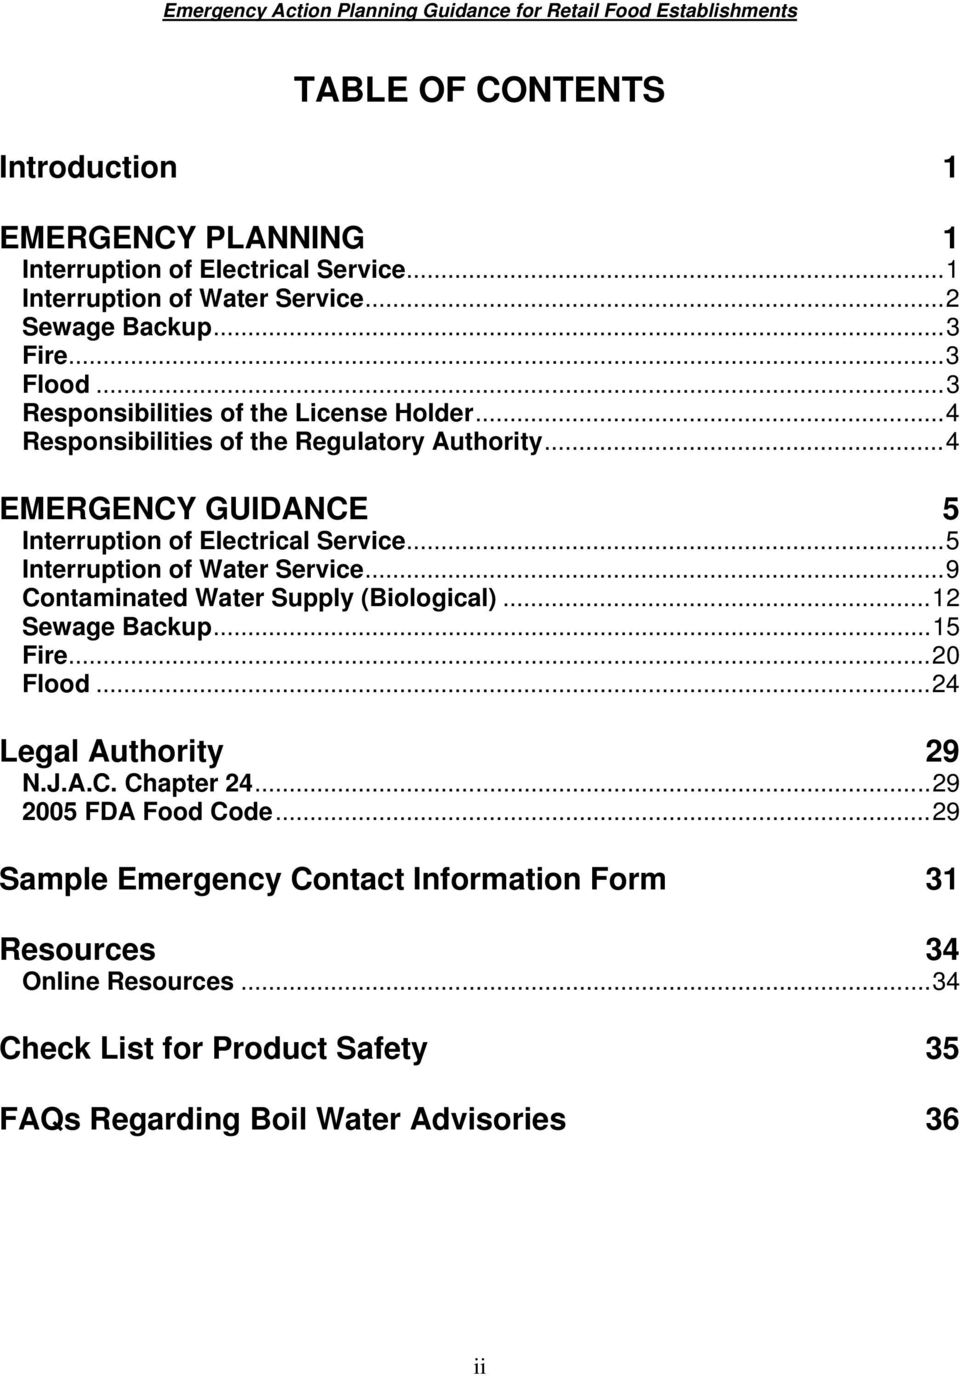 ..5 Interruption of Water Service...9 Contaminated Water Supply (Biological)...12 Sewage Backup...15 Fire...20 Flood...24 Legal Authority 29 N.J.A.C. Chapter 24.